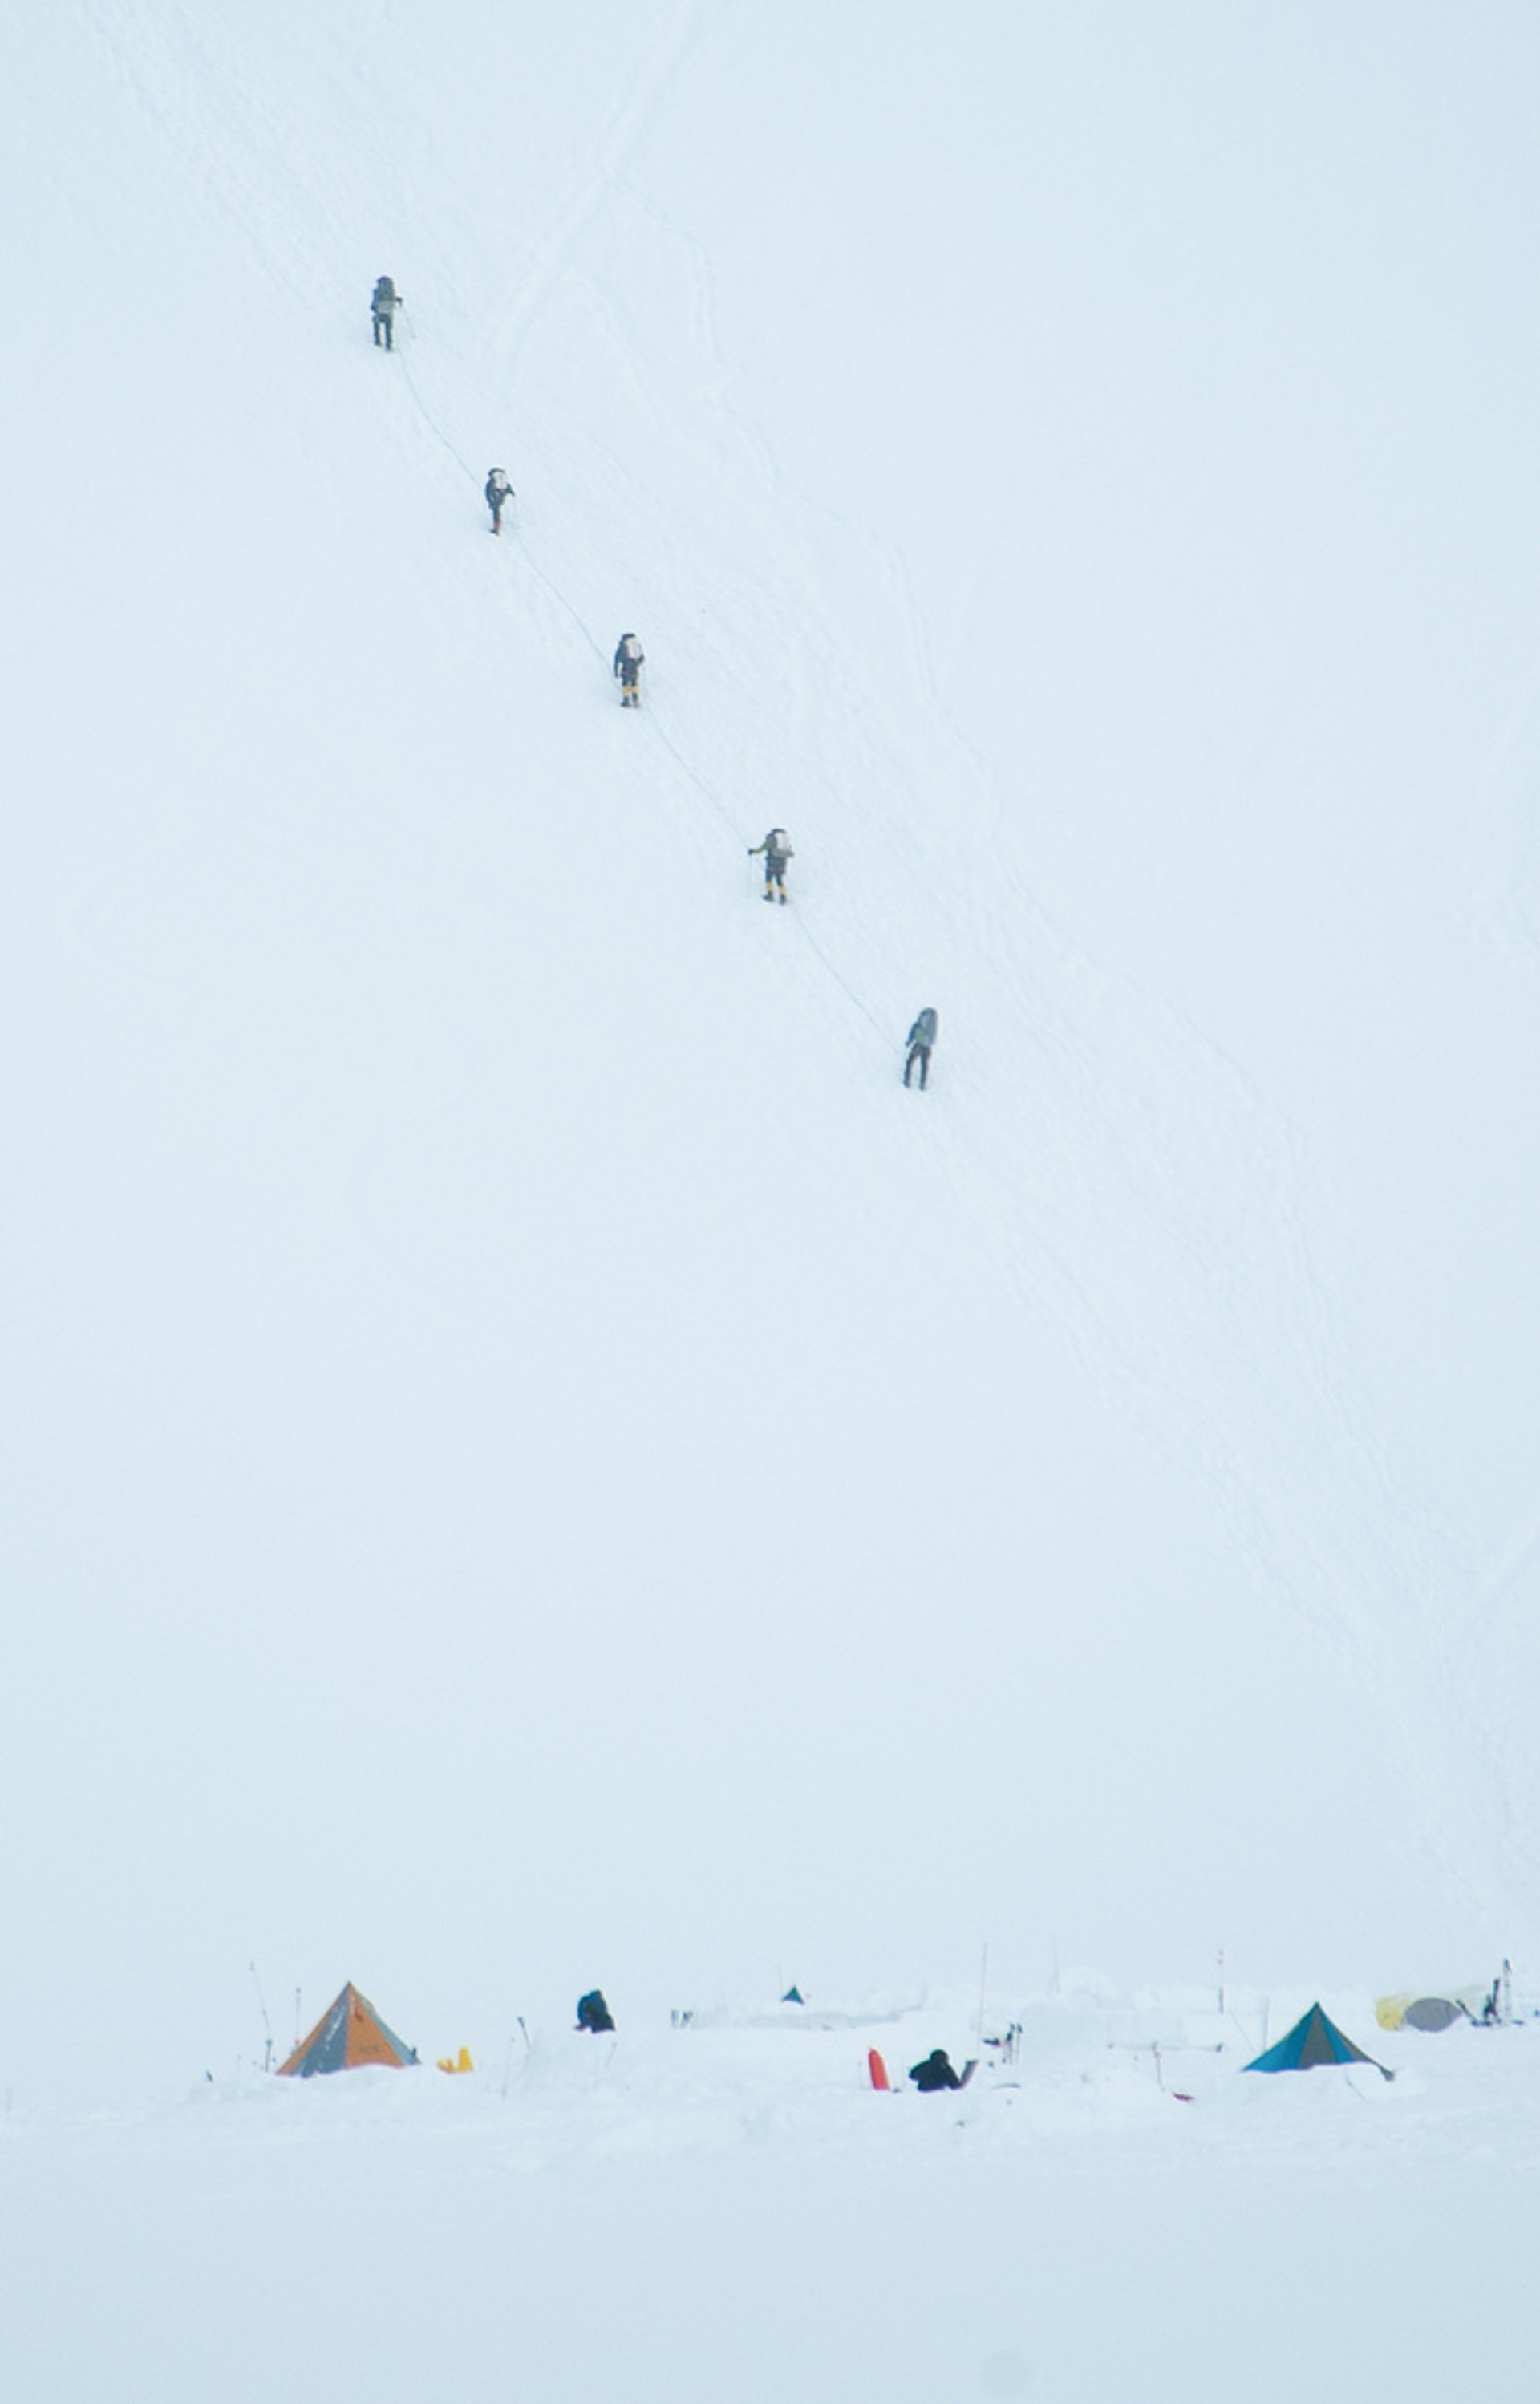 Climbers on McKinley 2020